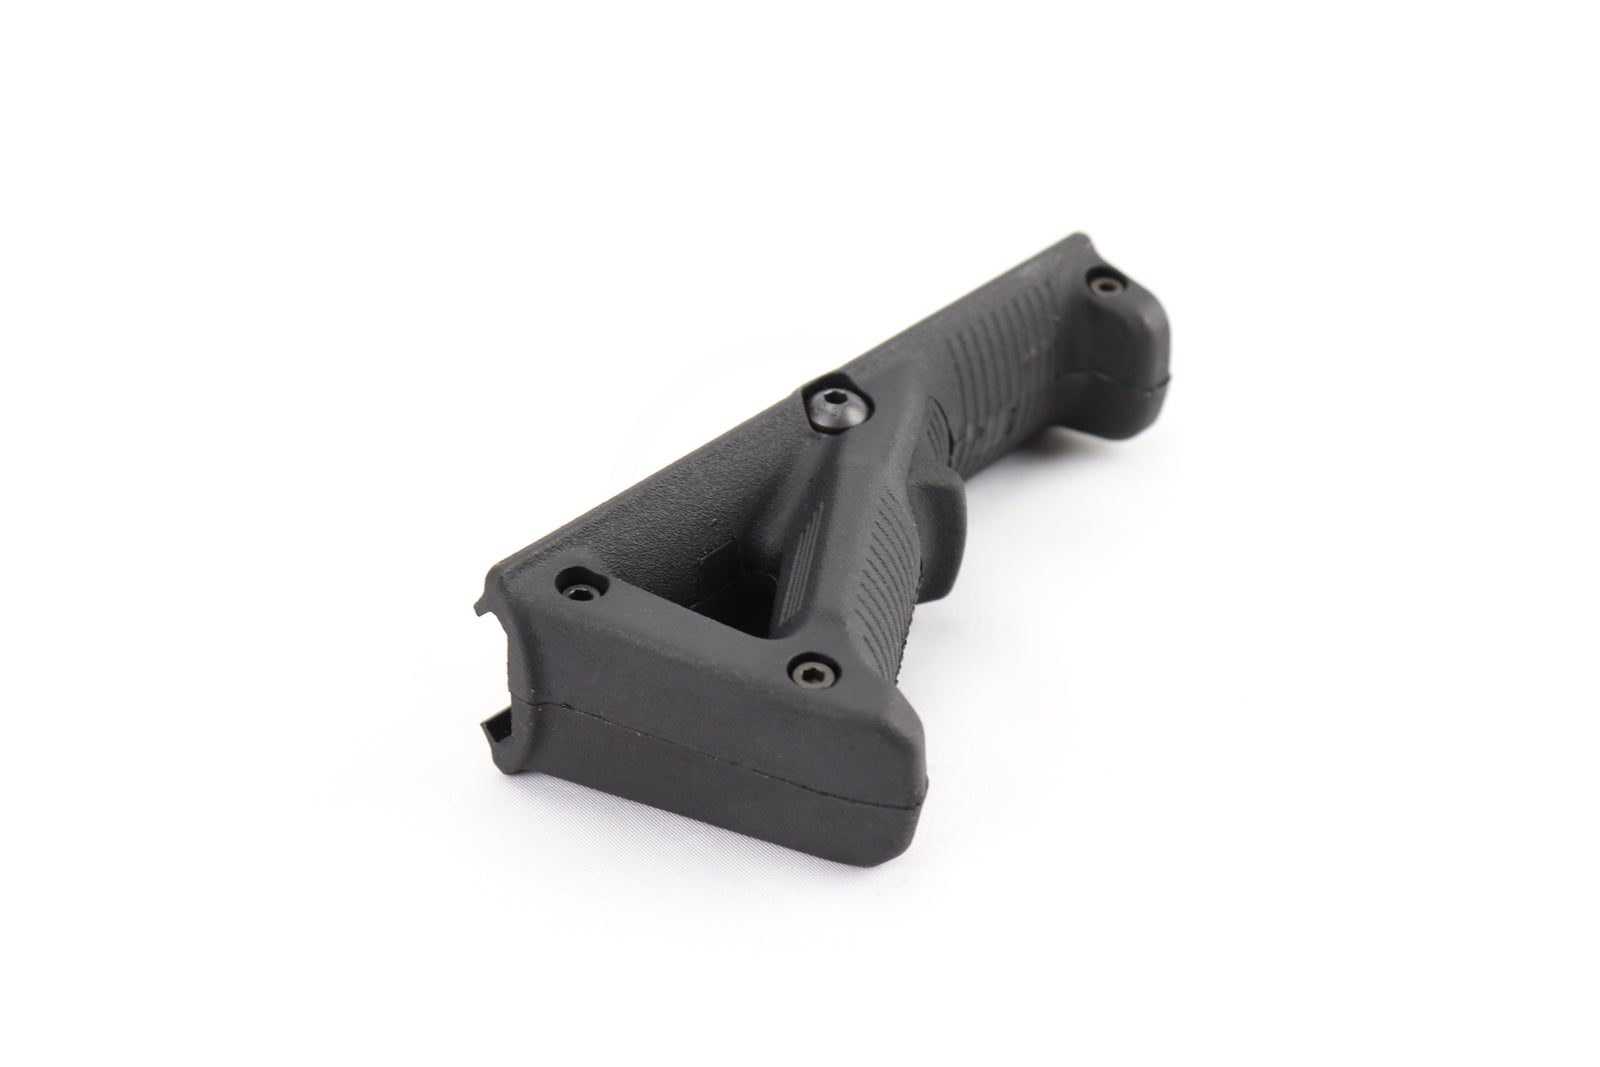 Element Angled Fore Grip Ver.2